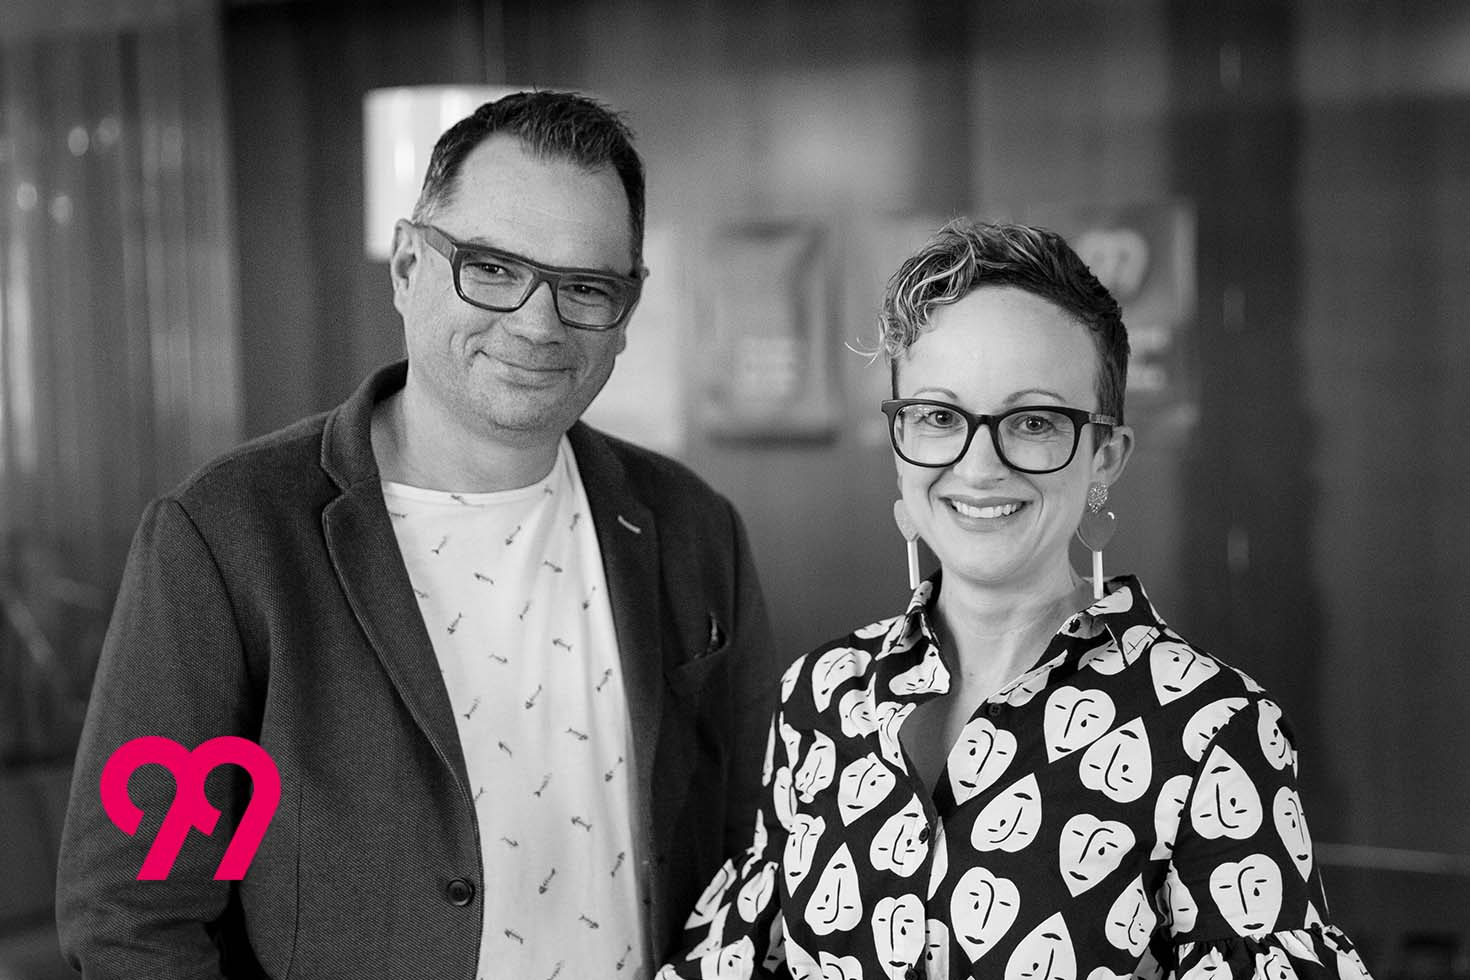 99 expands into brand experience; Danielle Barclay joins as Director of Experience Design, Craig McKay joins as Head of Applied Technology